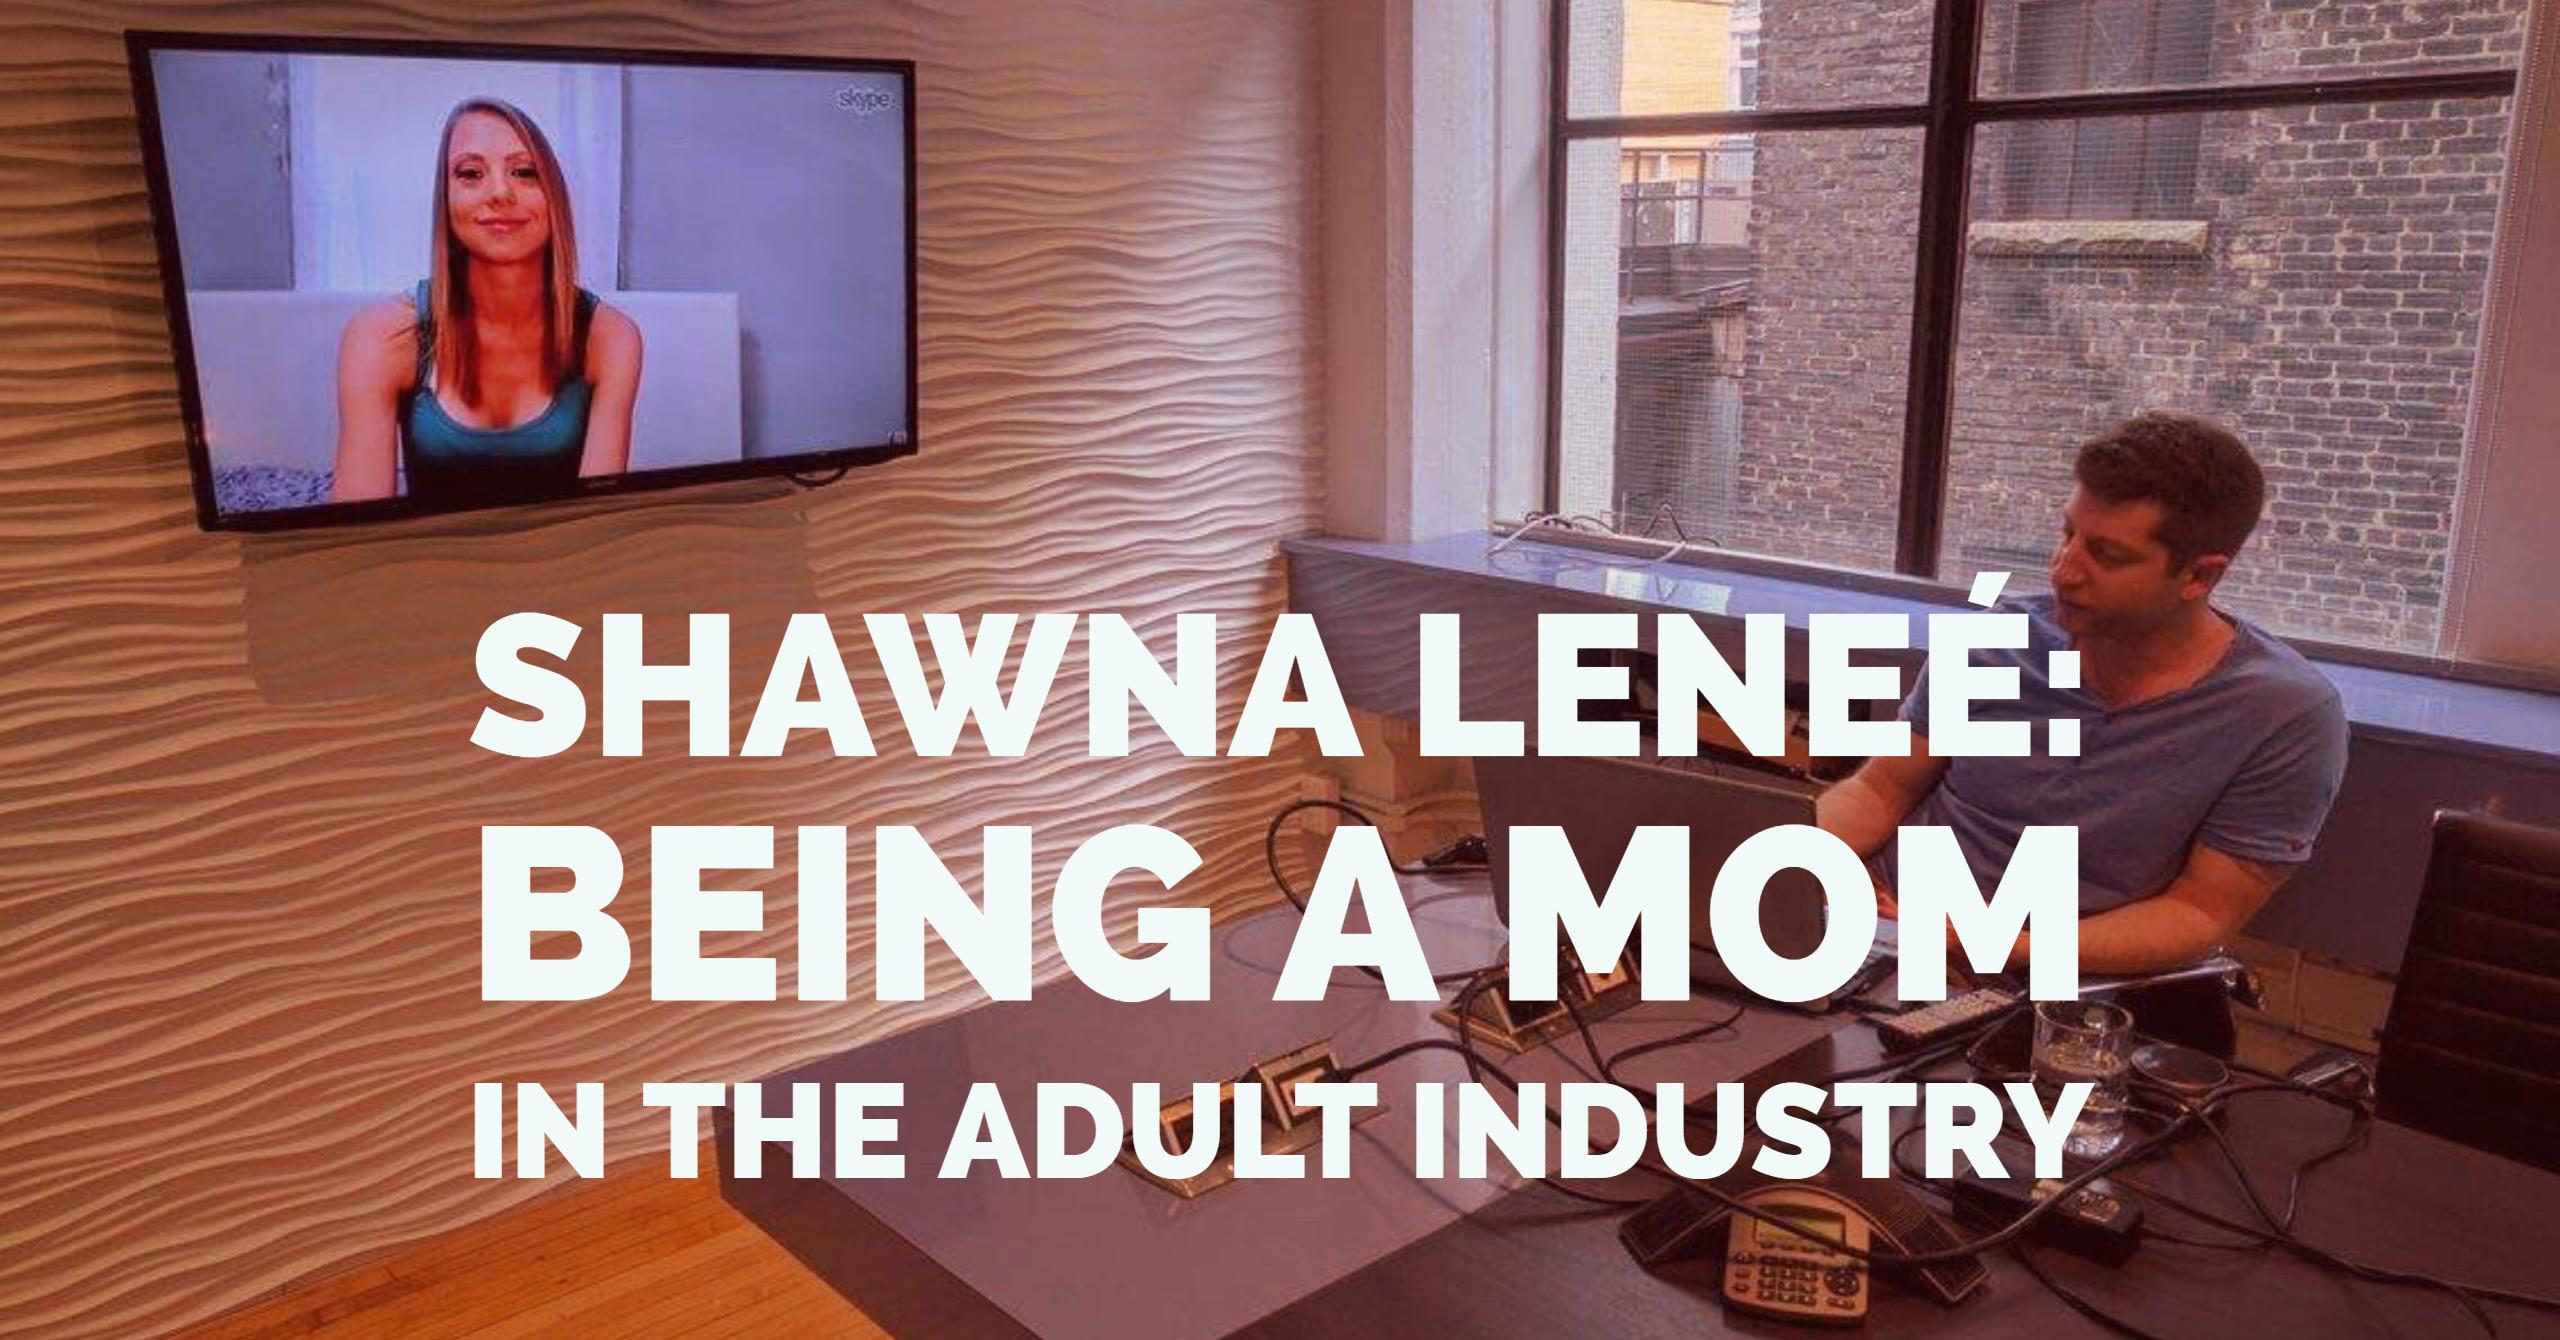 Shawna Leneé: Being a Mom in the Adult Industry